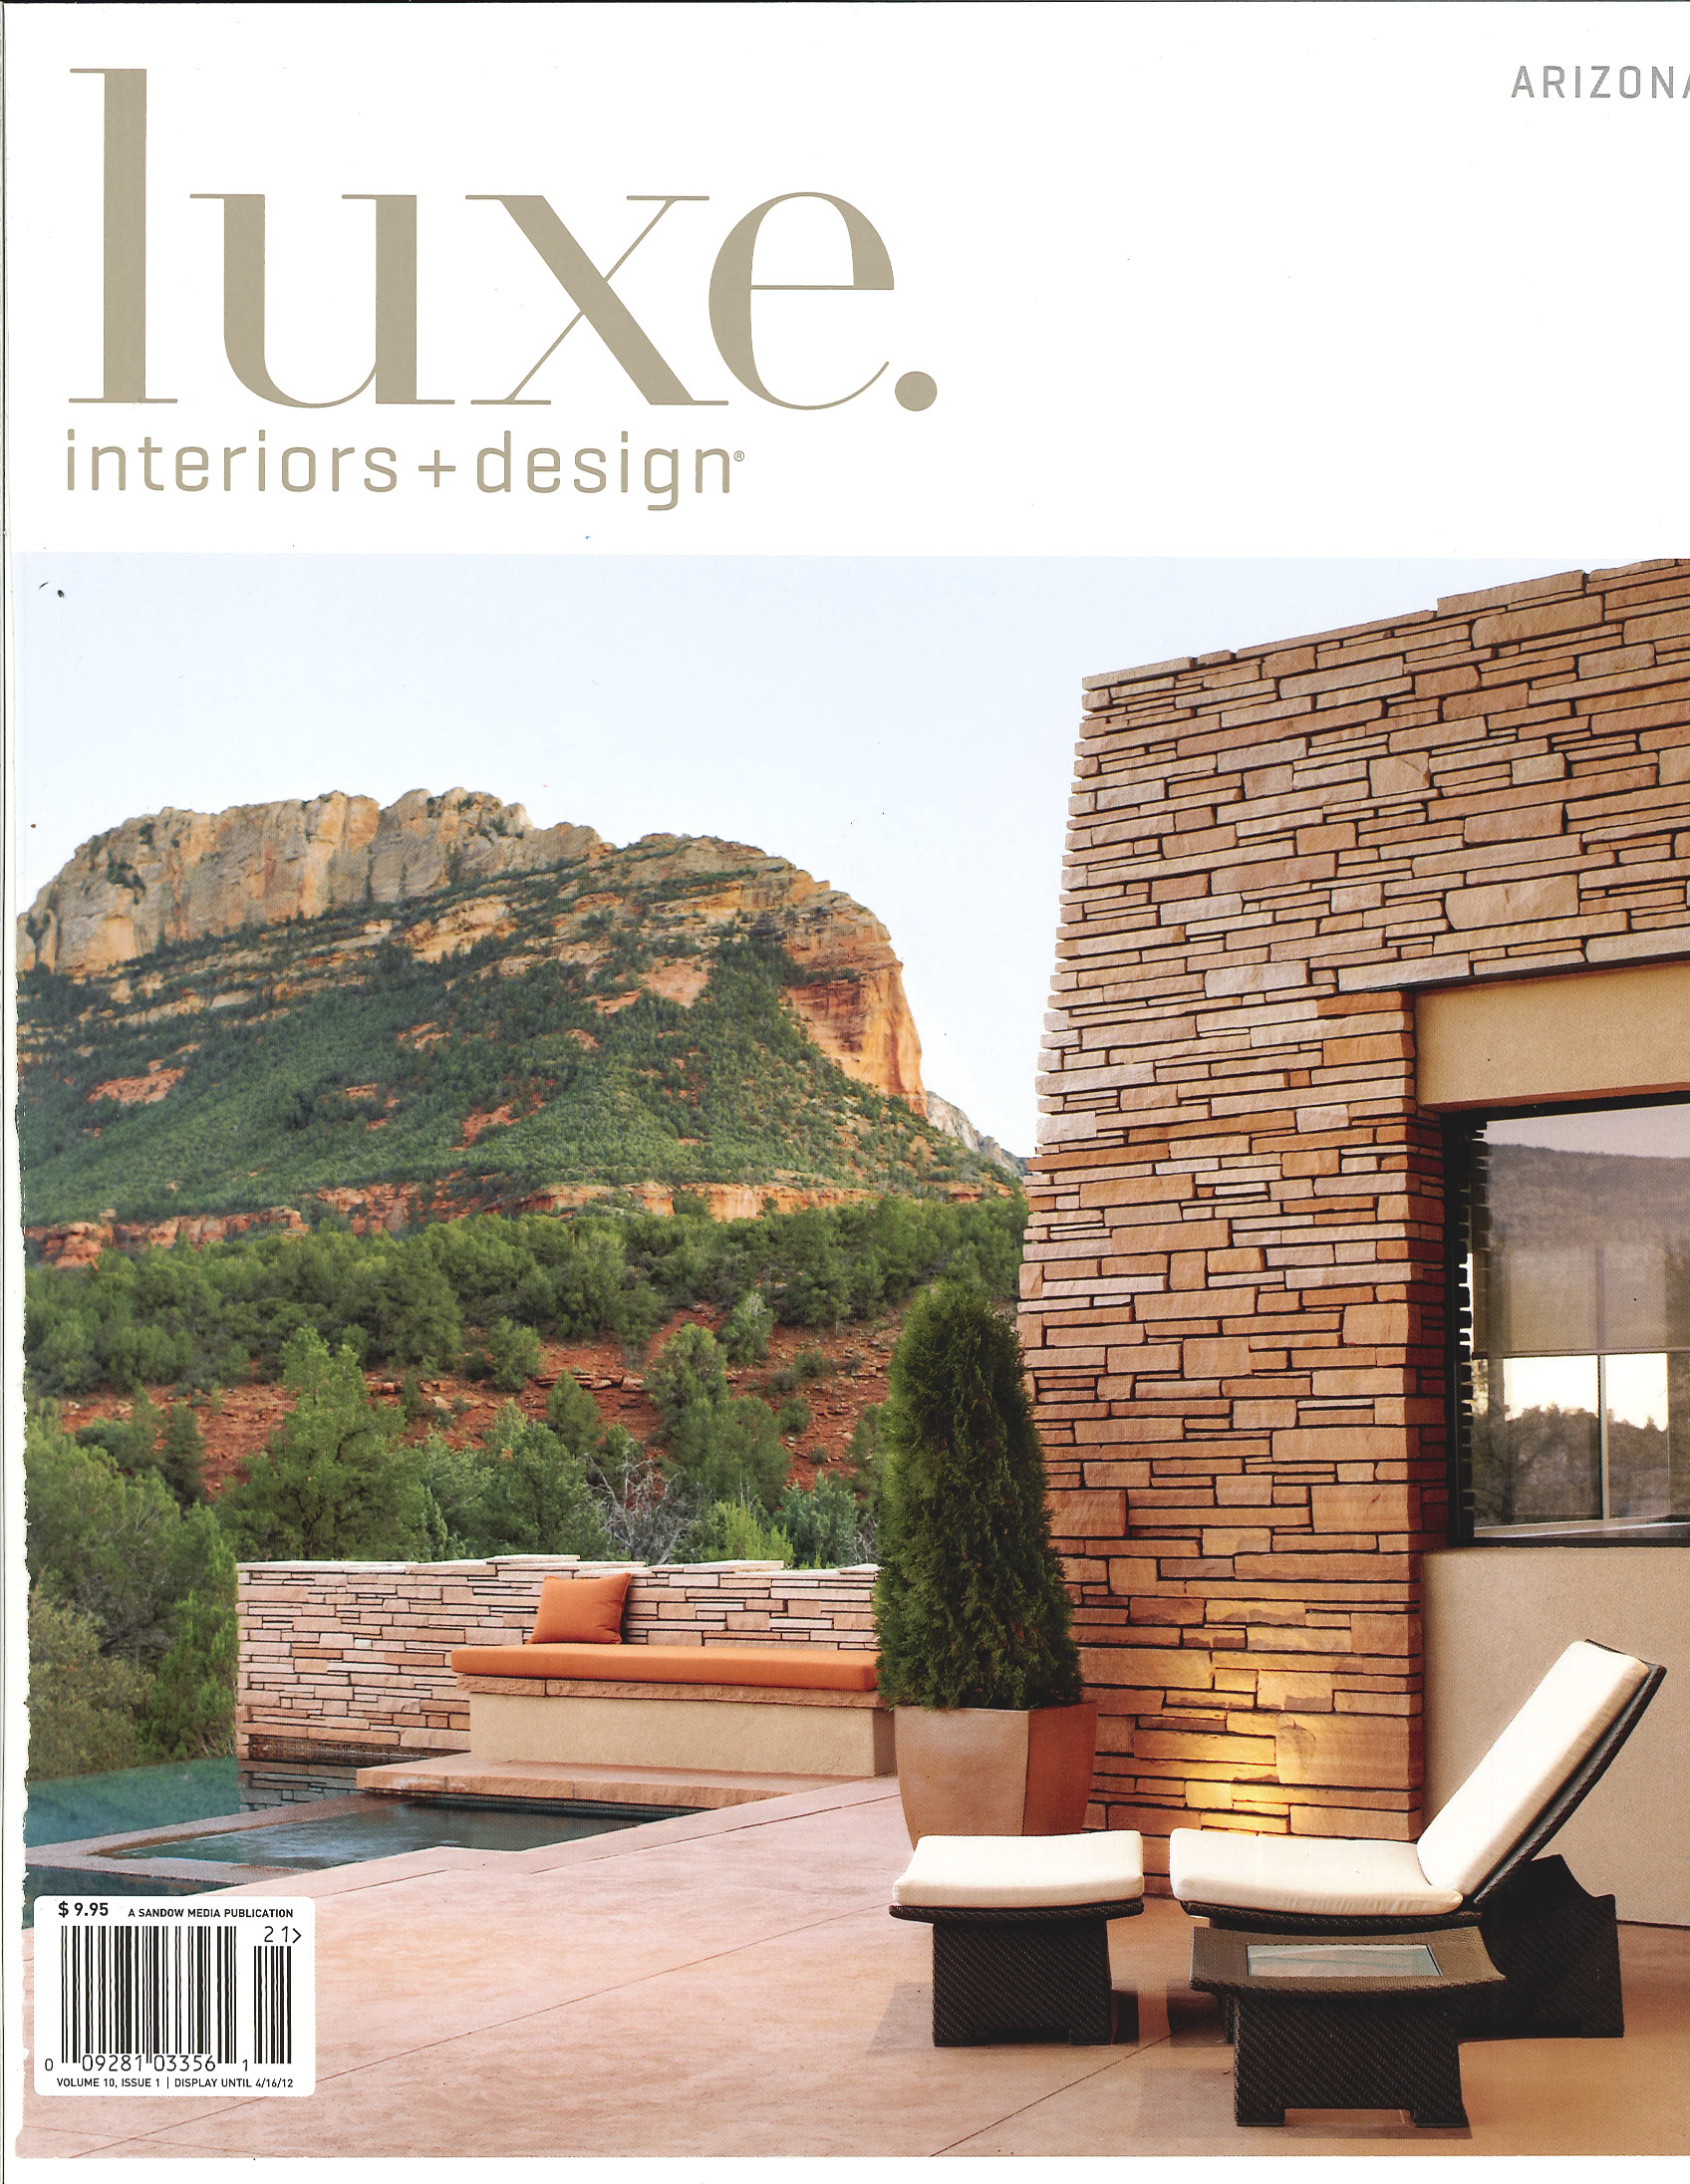 PHX Architecture Makes The Cover Of LUXE Magazine